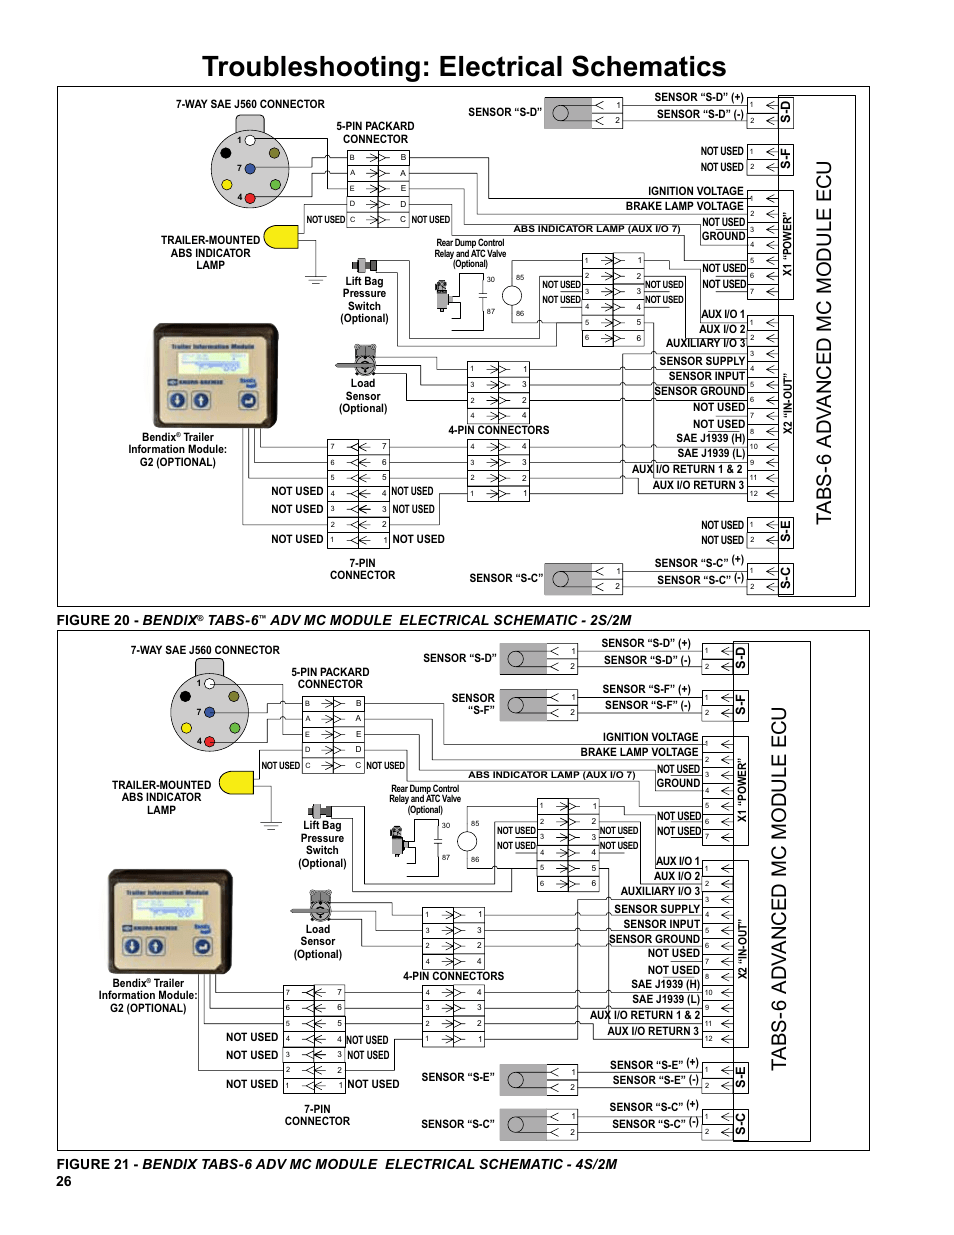 Troubleshooting: electrical schematics, 26 figure 20